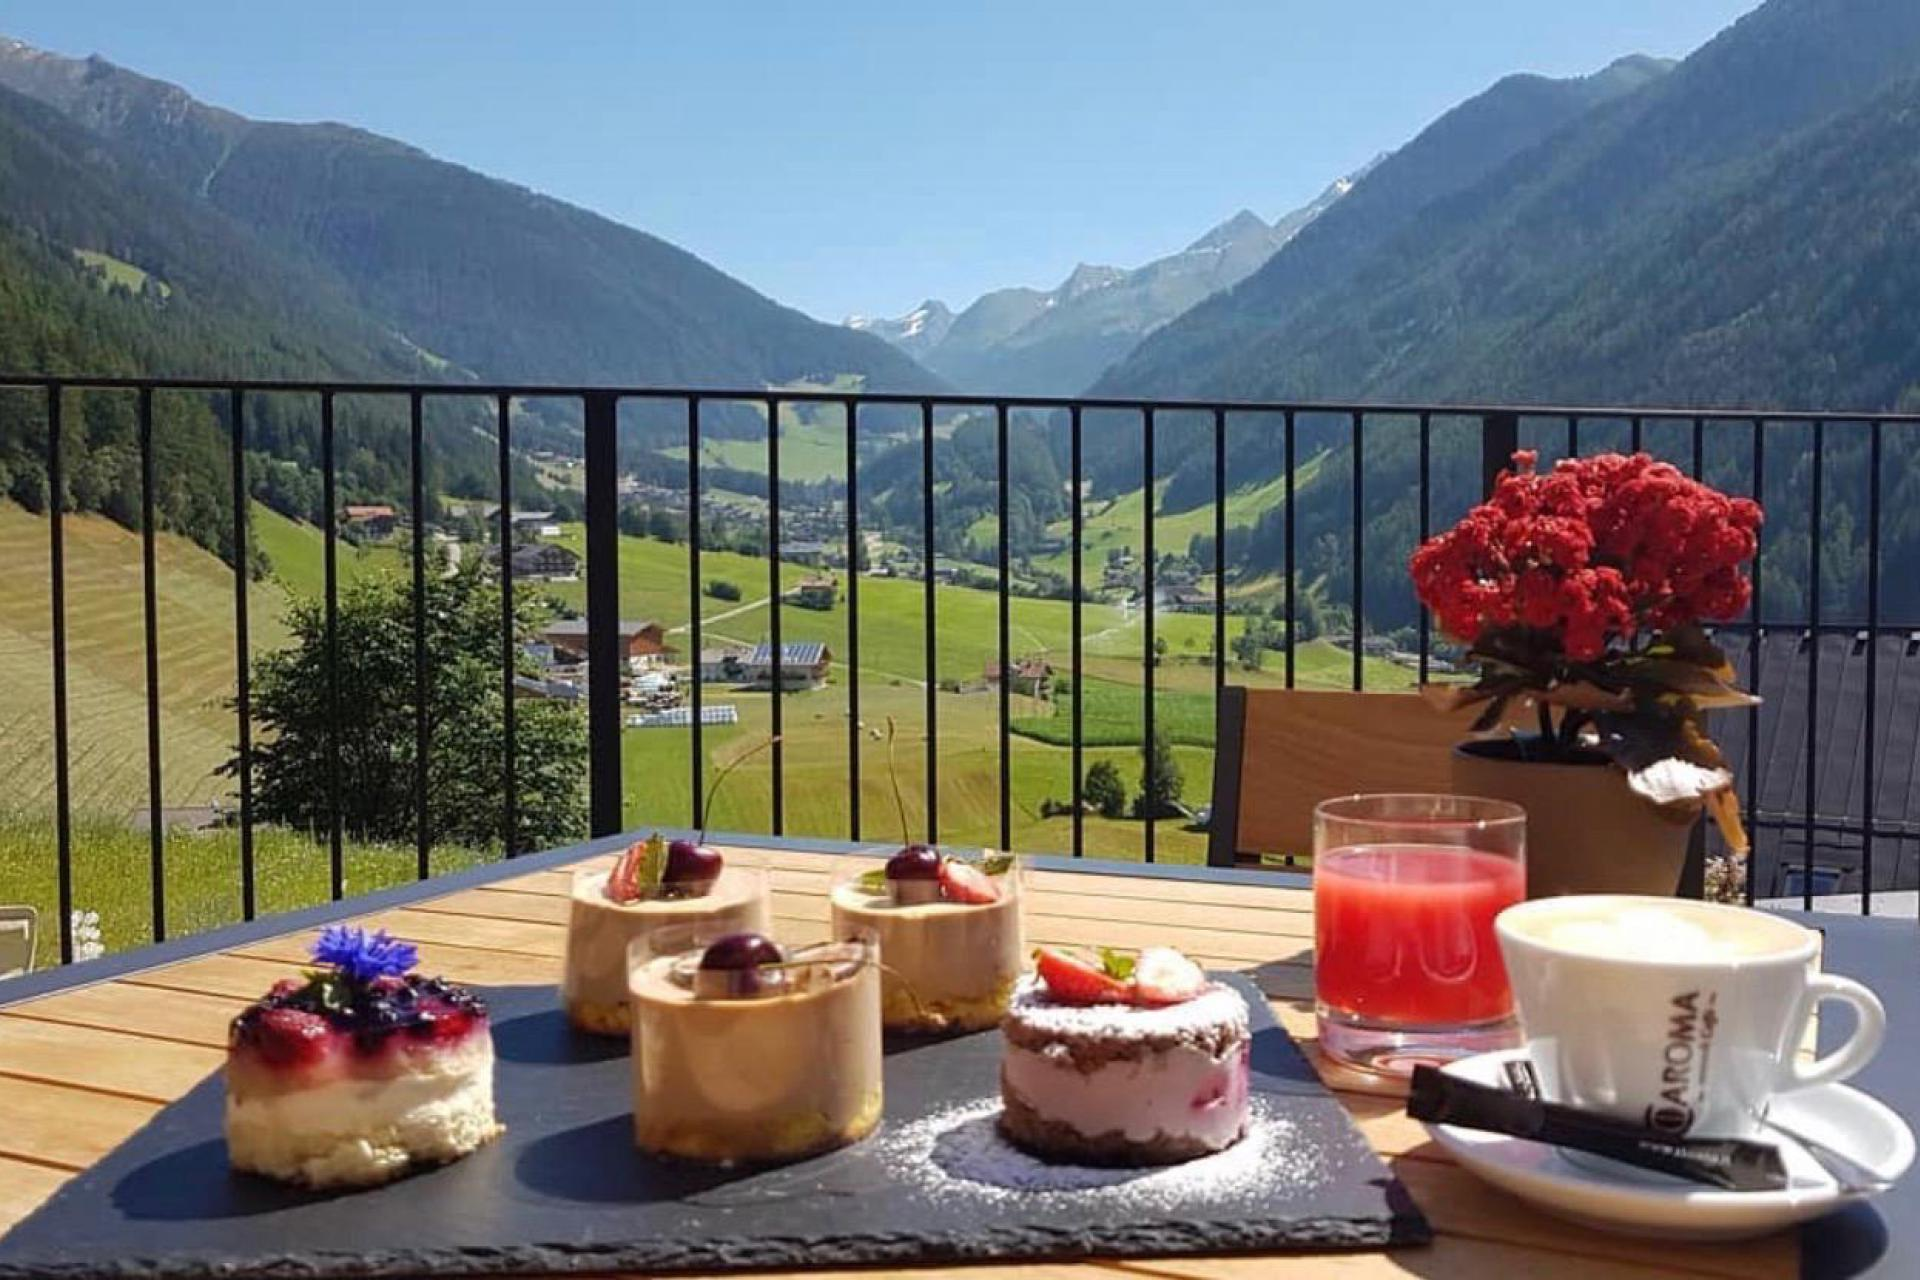 Agriturismo Dolomites Luxury agriturismo in the Dolomites with spa and bistrot